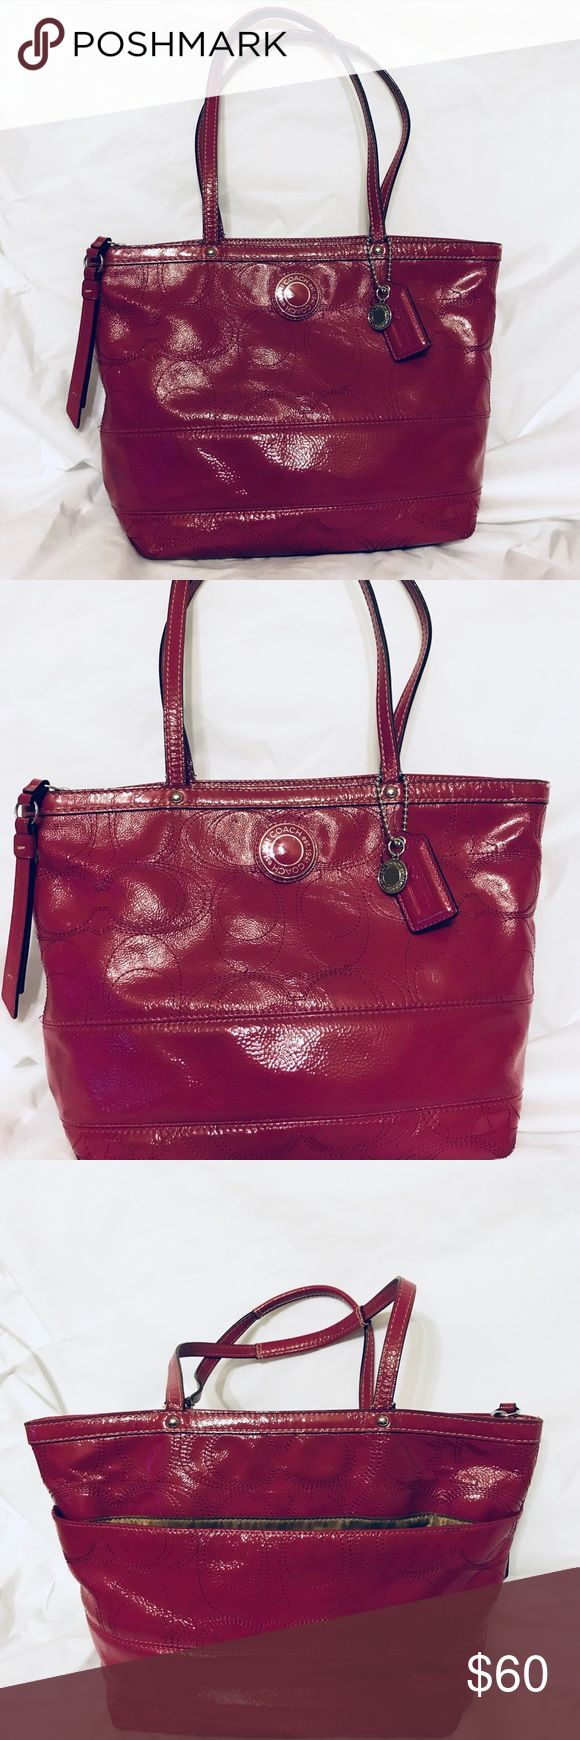 "Magenta Coach Tote Gently used Coach tote in excellent condition. Beautiful Magenta color. Zip top closure. Large pocket in back. 1 zip pocket and 2 non zip pockets inside. 14"" L x 9"" H x 3 1/2"" W. Coach Bags Totes"